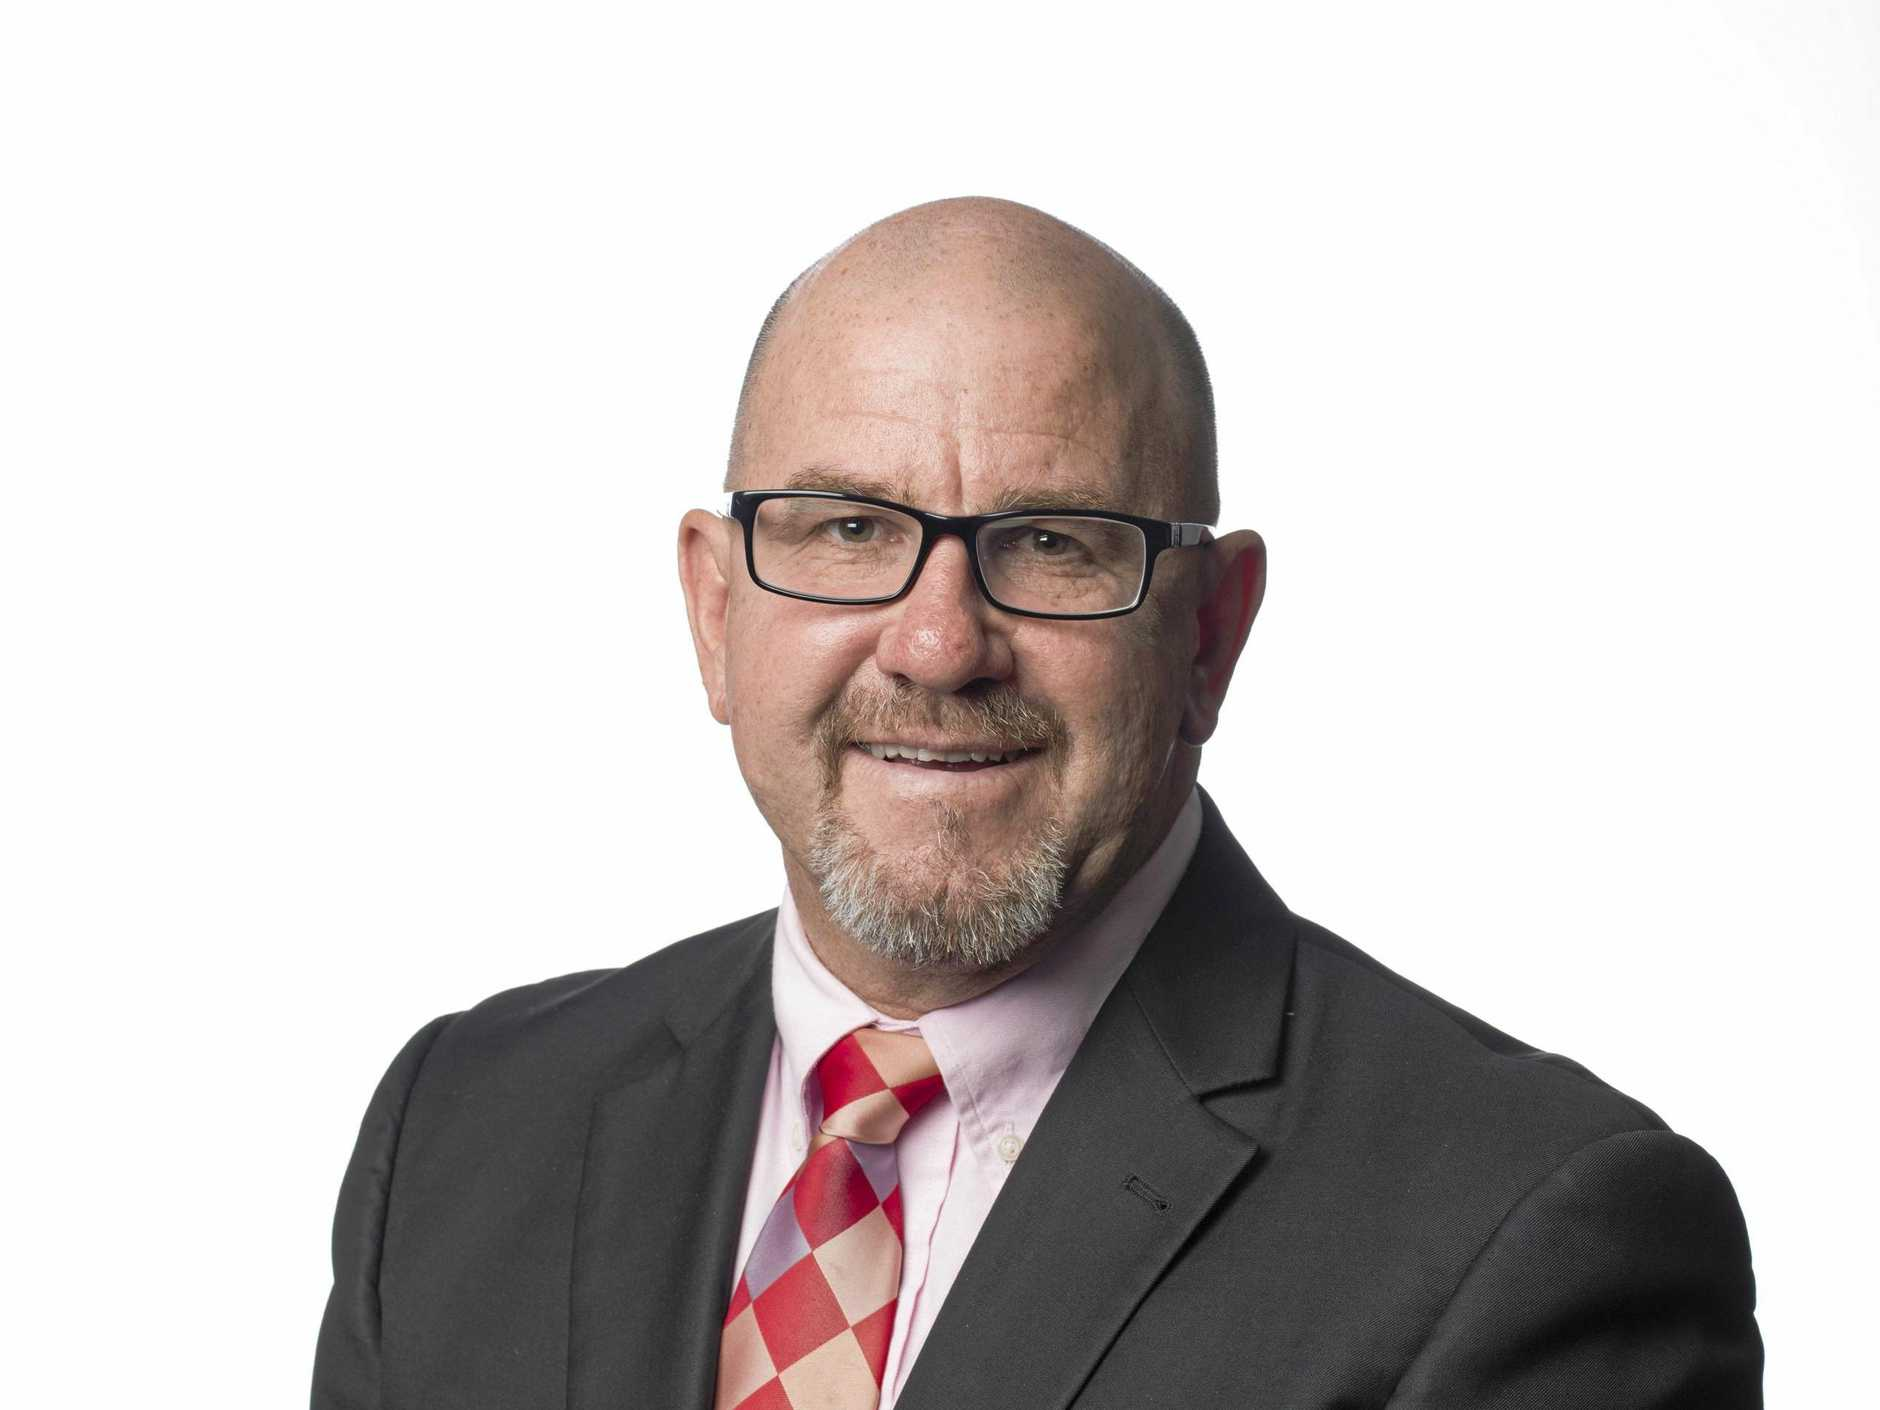 The Fraser Coast's new CEO Ken Diehm was appointed to the role in a unanimous vote earlier today.